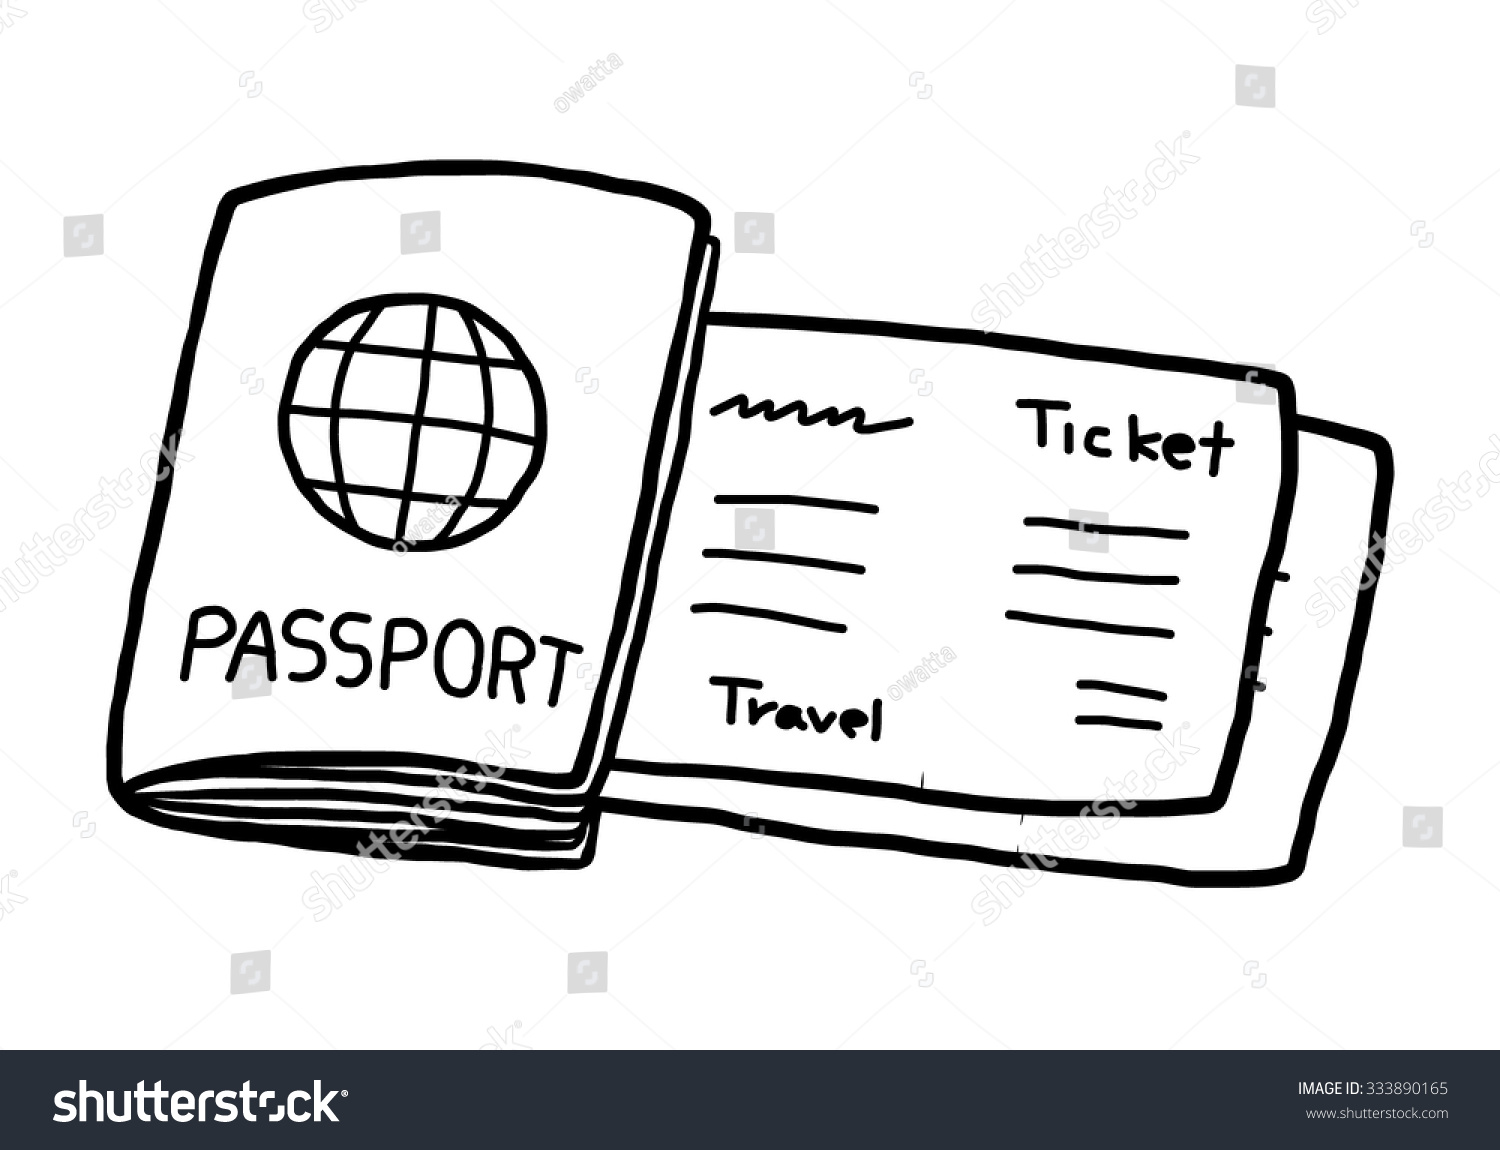 passport ticket cartoon vector illustration black stock vector passport and ticket cartoon vector and illustration black and white hand drawn